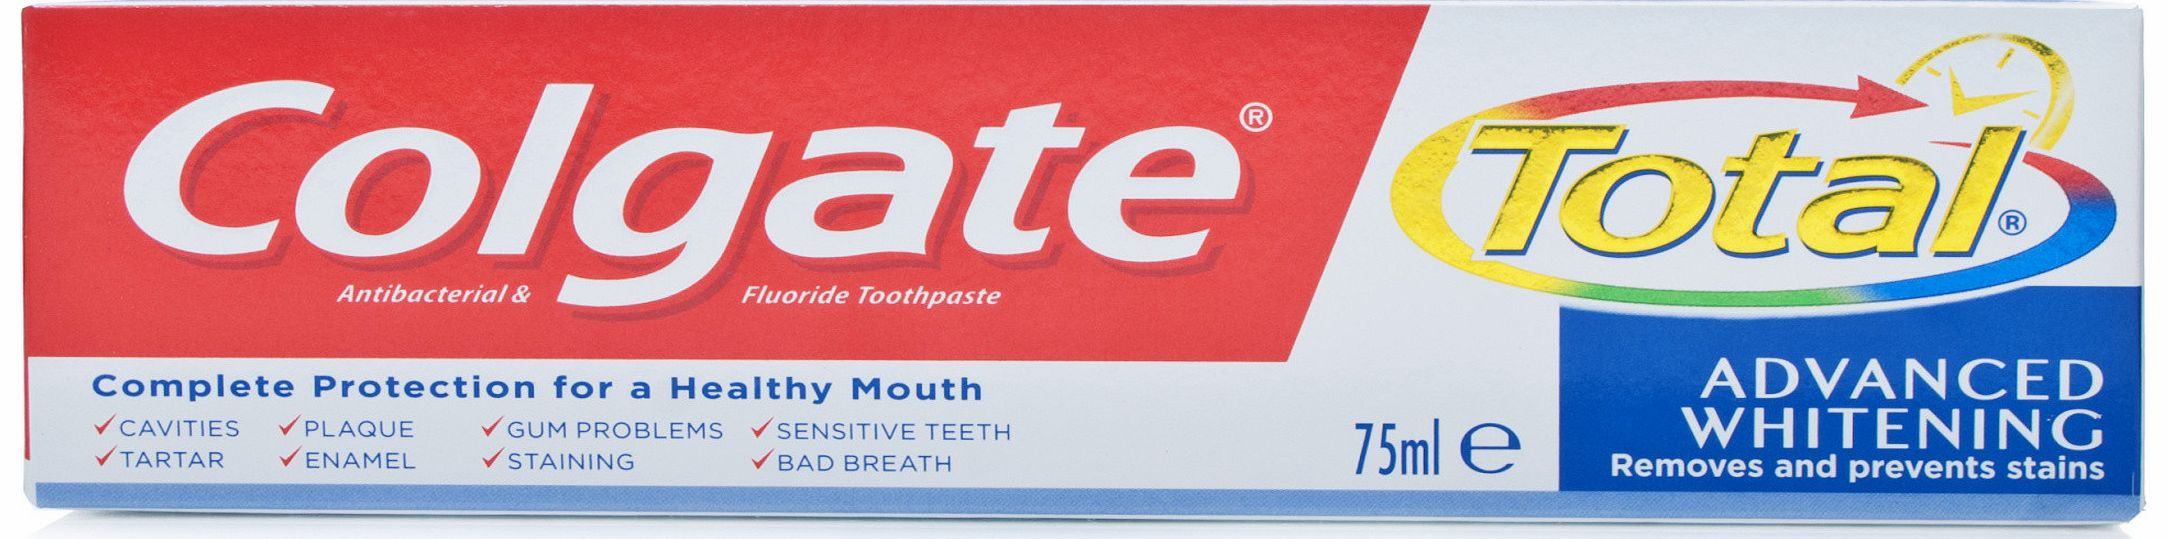 essay on colgate total toothpaste The colgate total toothpaste website states the following: colgate total® is the only toothpaste on the market that has undergone the us food and drug administration's rigorous new drug.